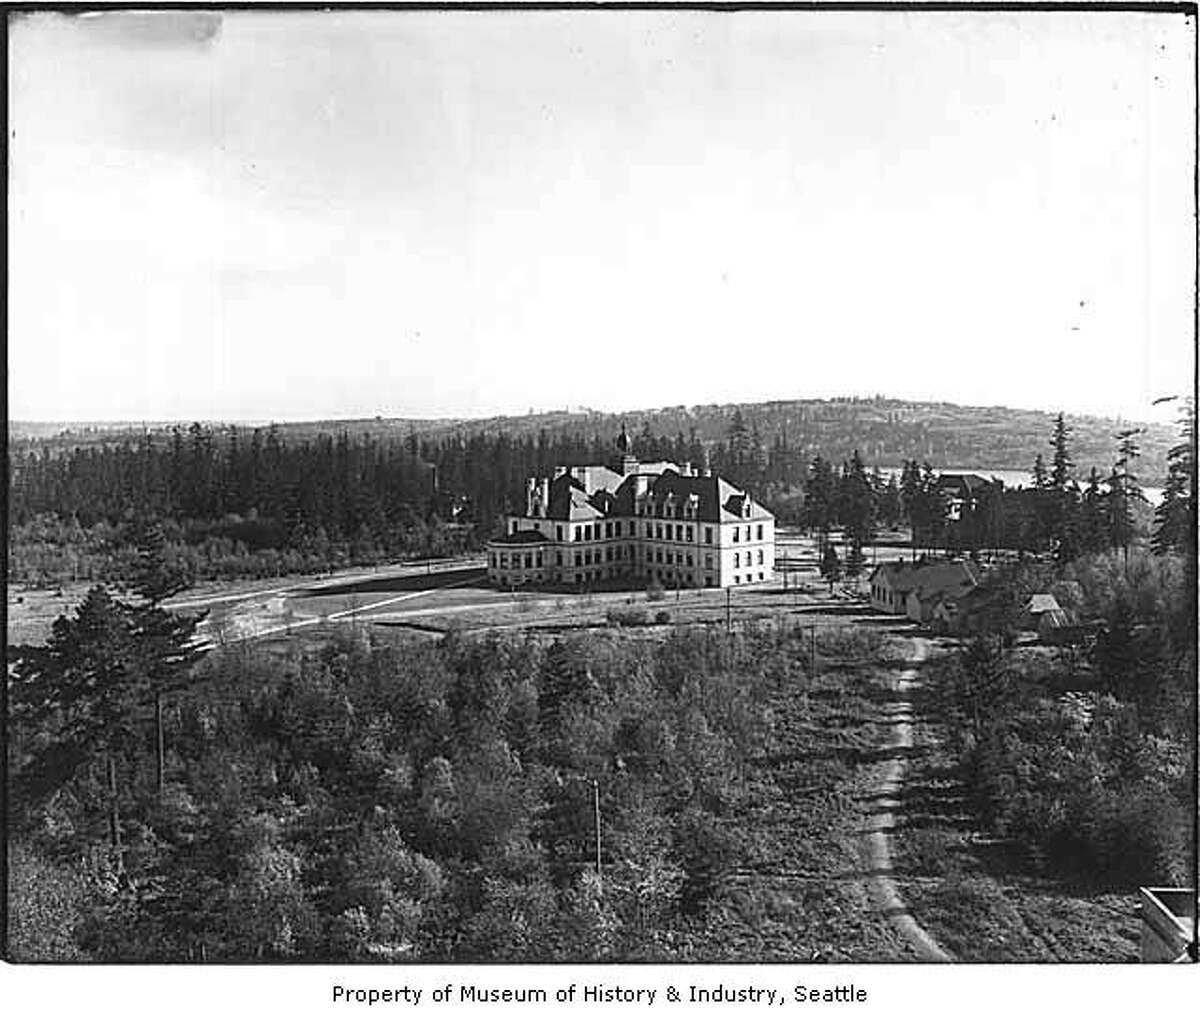 Denny Hall was the all-in-one building at UW's campus when it was built in 1895. Shown here in 1905, the building housed science labs, a library, a natural history museum, offices, 10 classrooms, a music room, a lecture hall and a 736-seat assembly hall. Photo courtesy MOHAI, PEMCO Webster and Stevens Collection, image number 1983.10.6985.1.